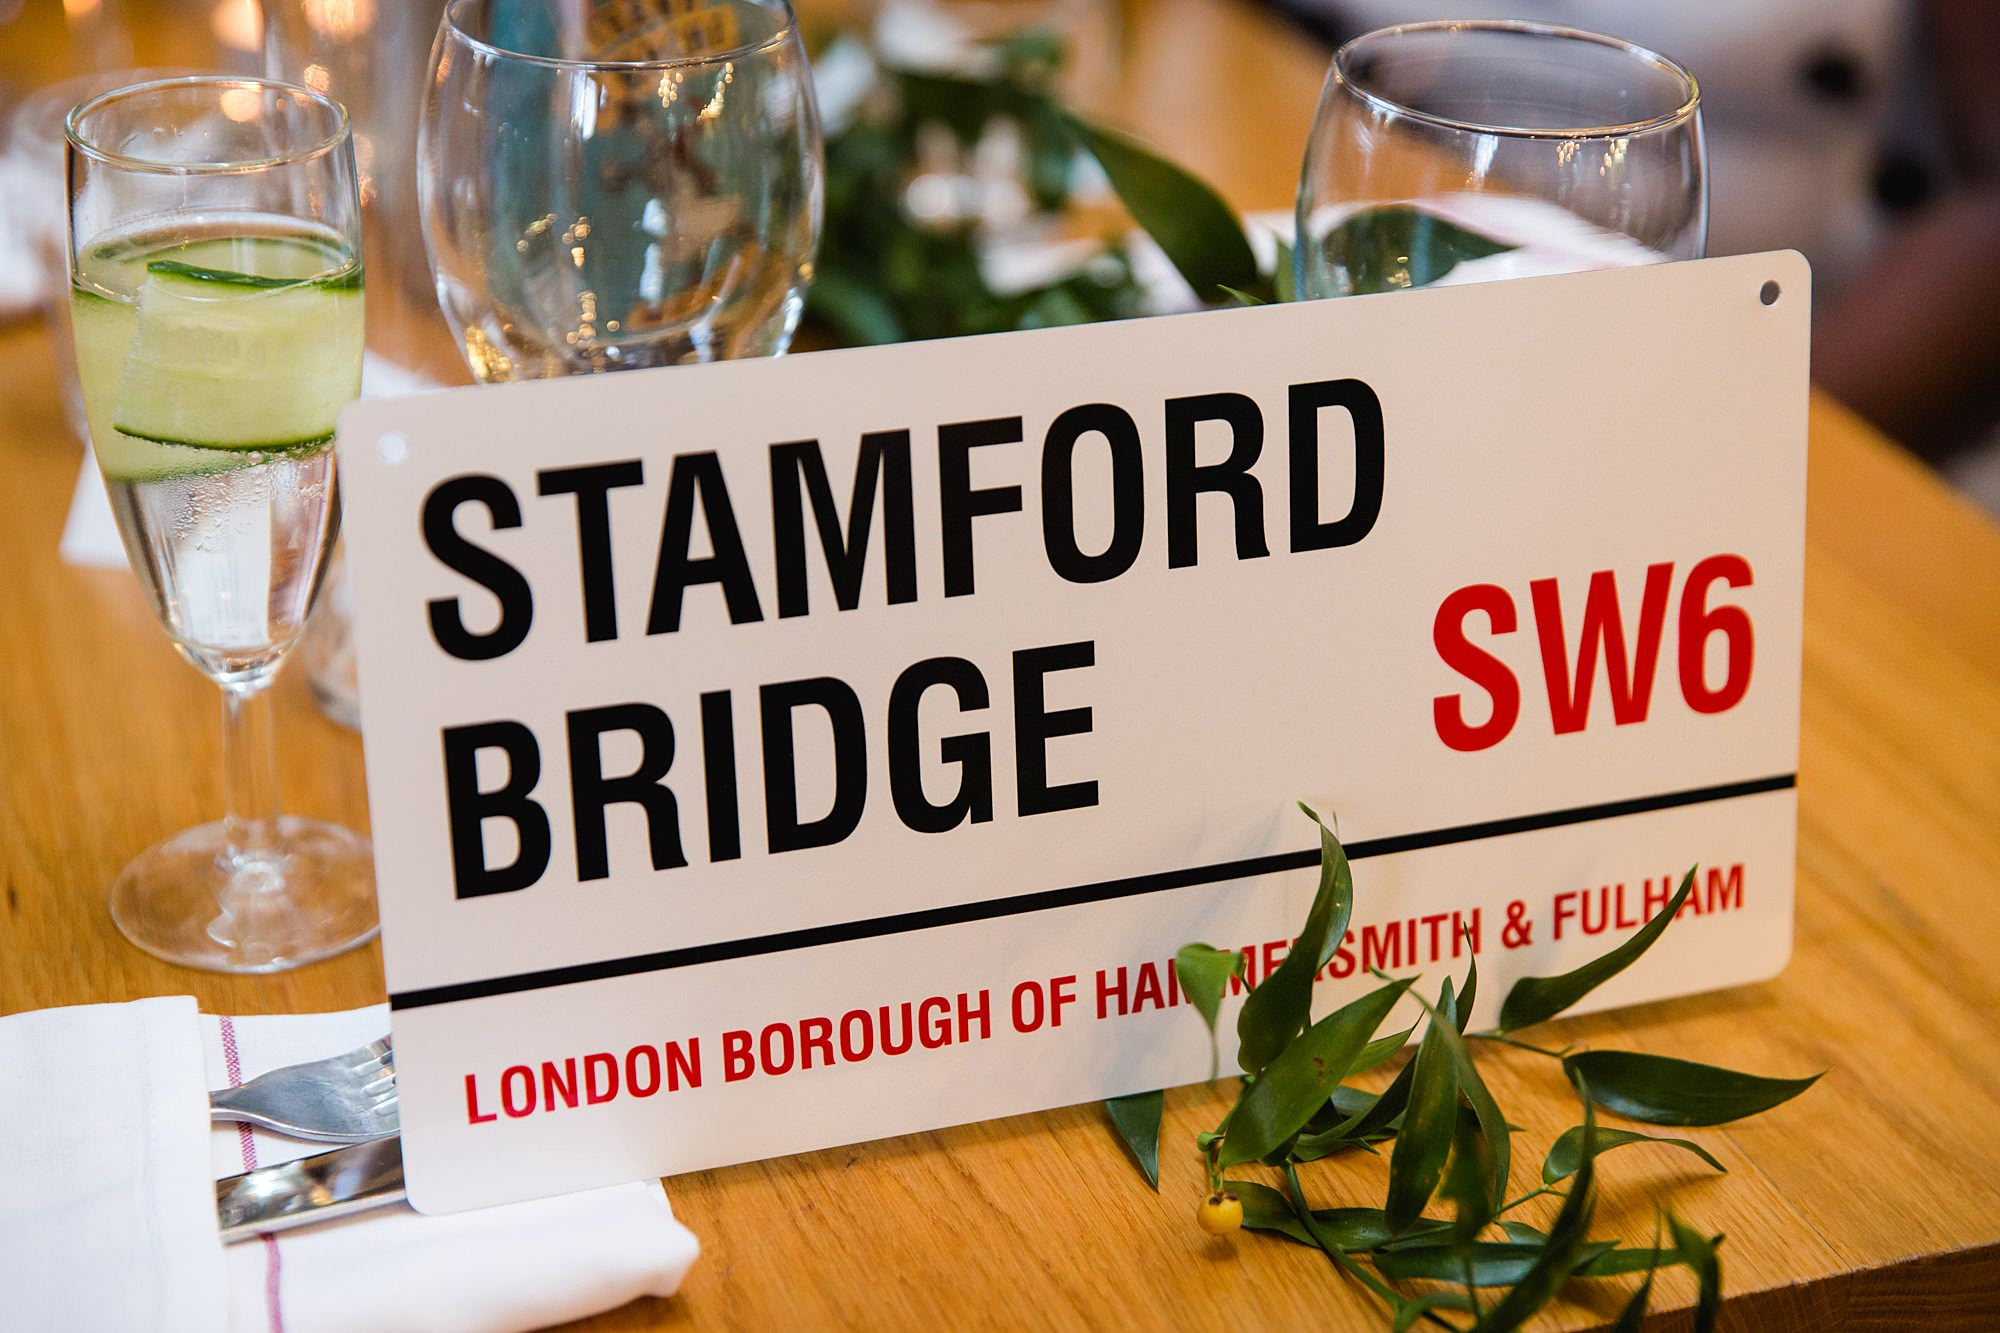 The Union Paddington wedding london theme table names